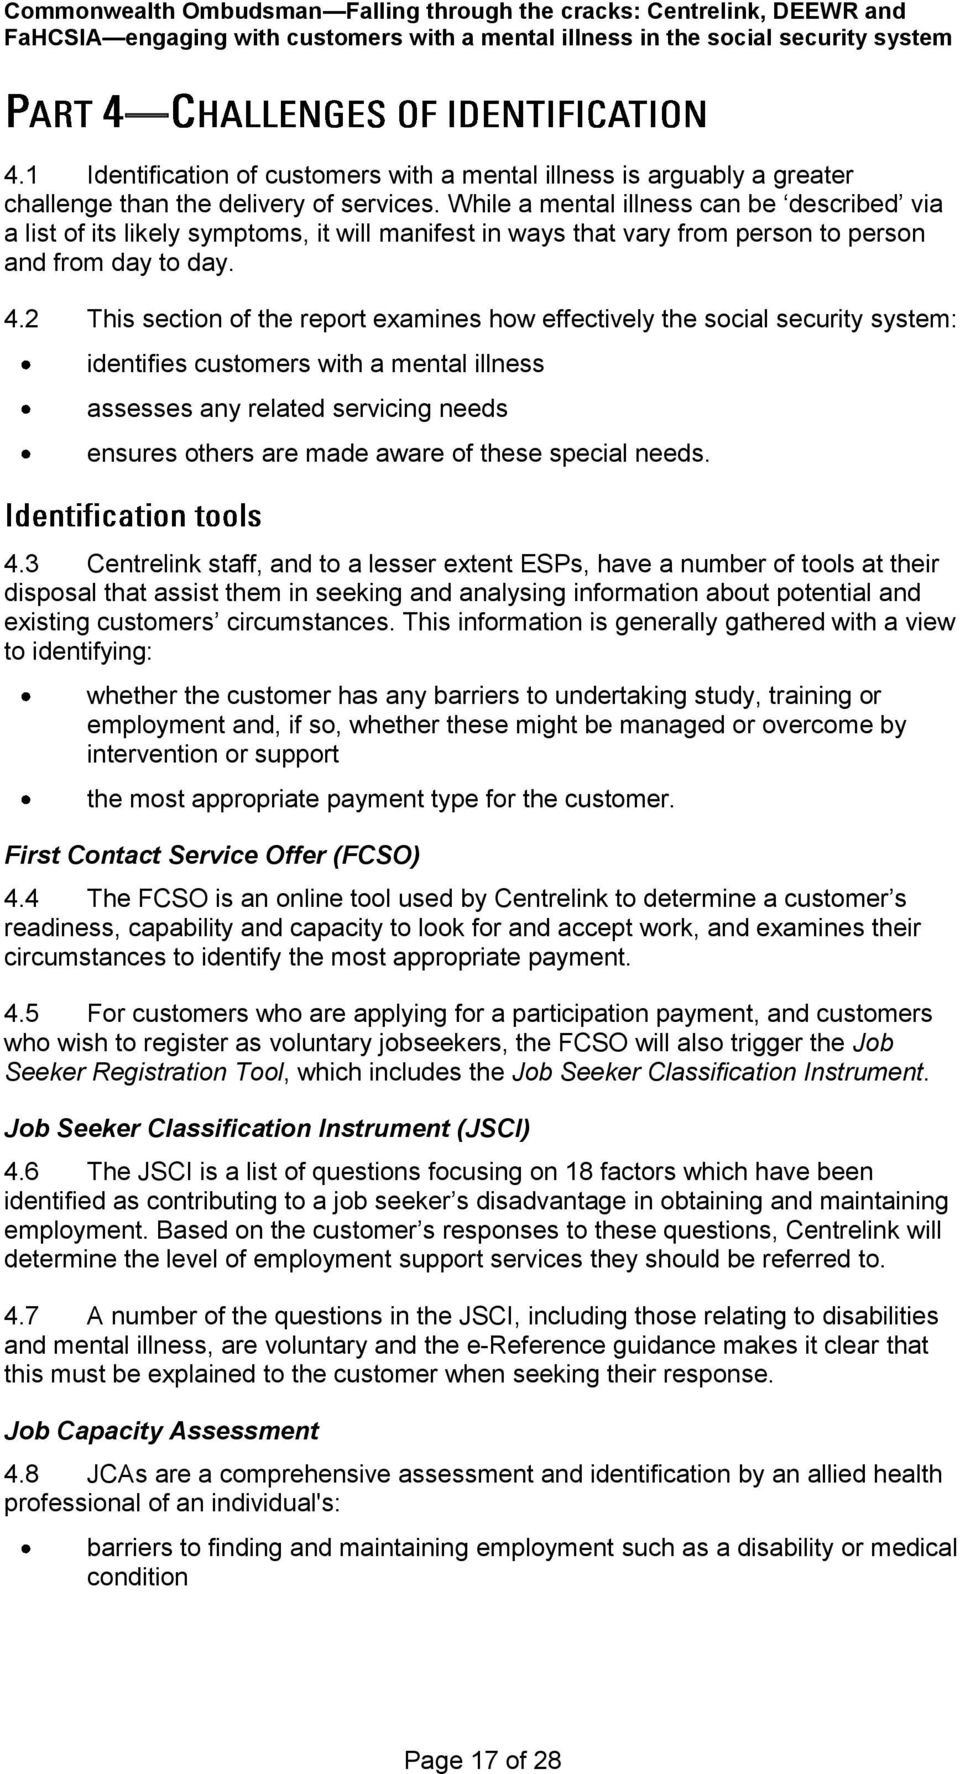 2 This section of the report examines how effectively the social security system: identifies customers with a mental illness assesses any related servicing needs ensures others are made aware of